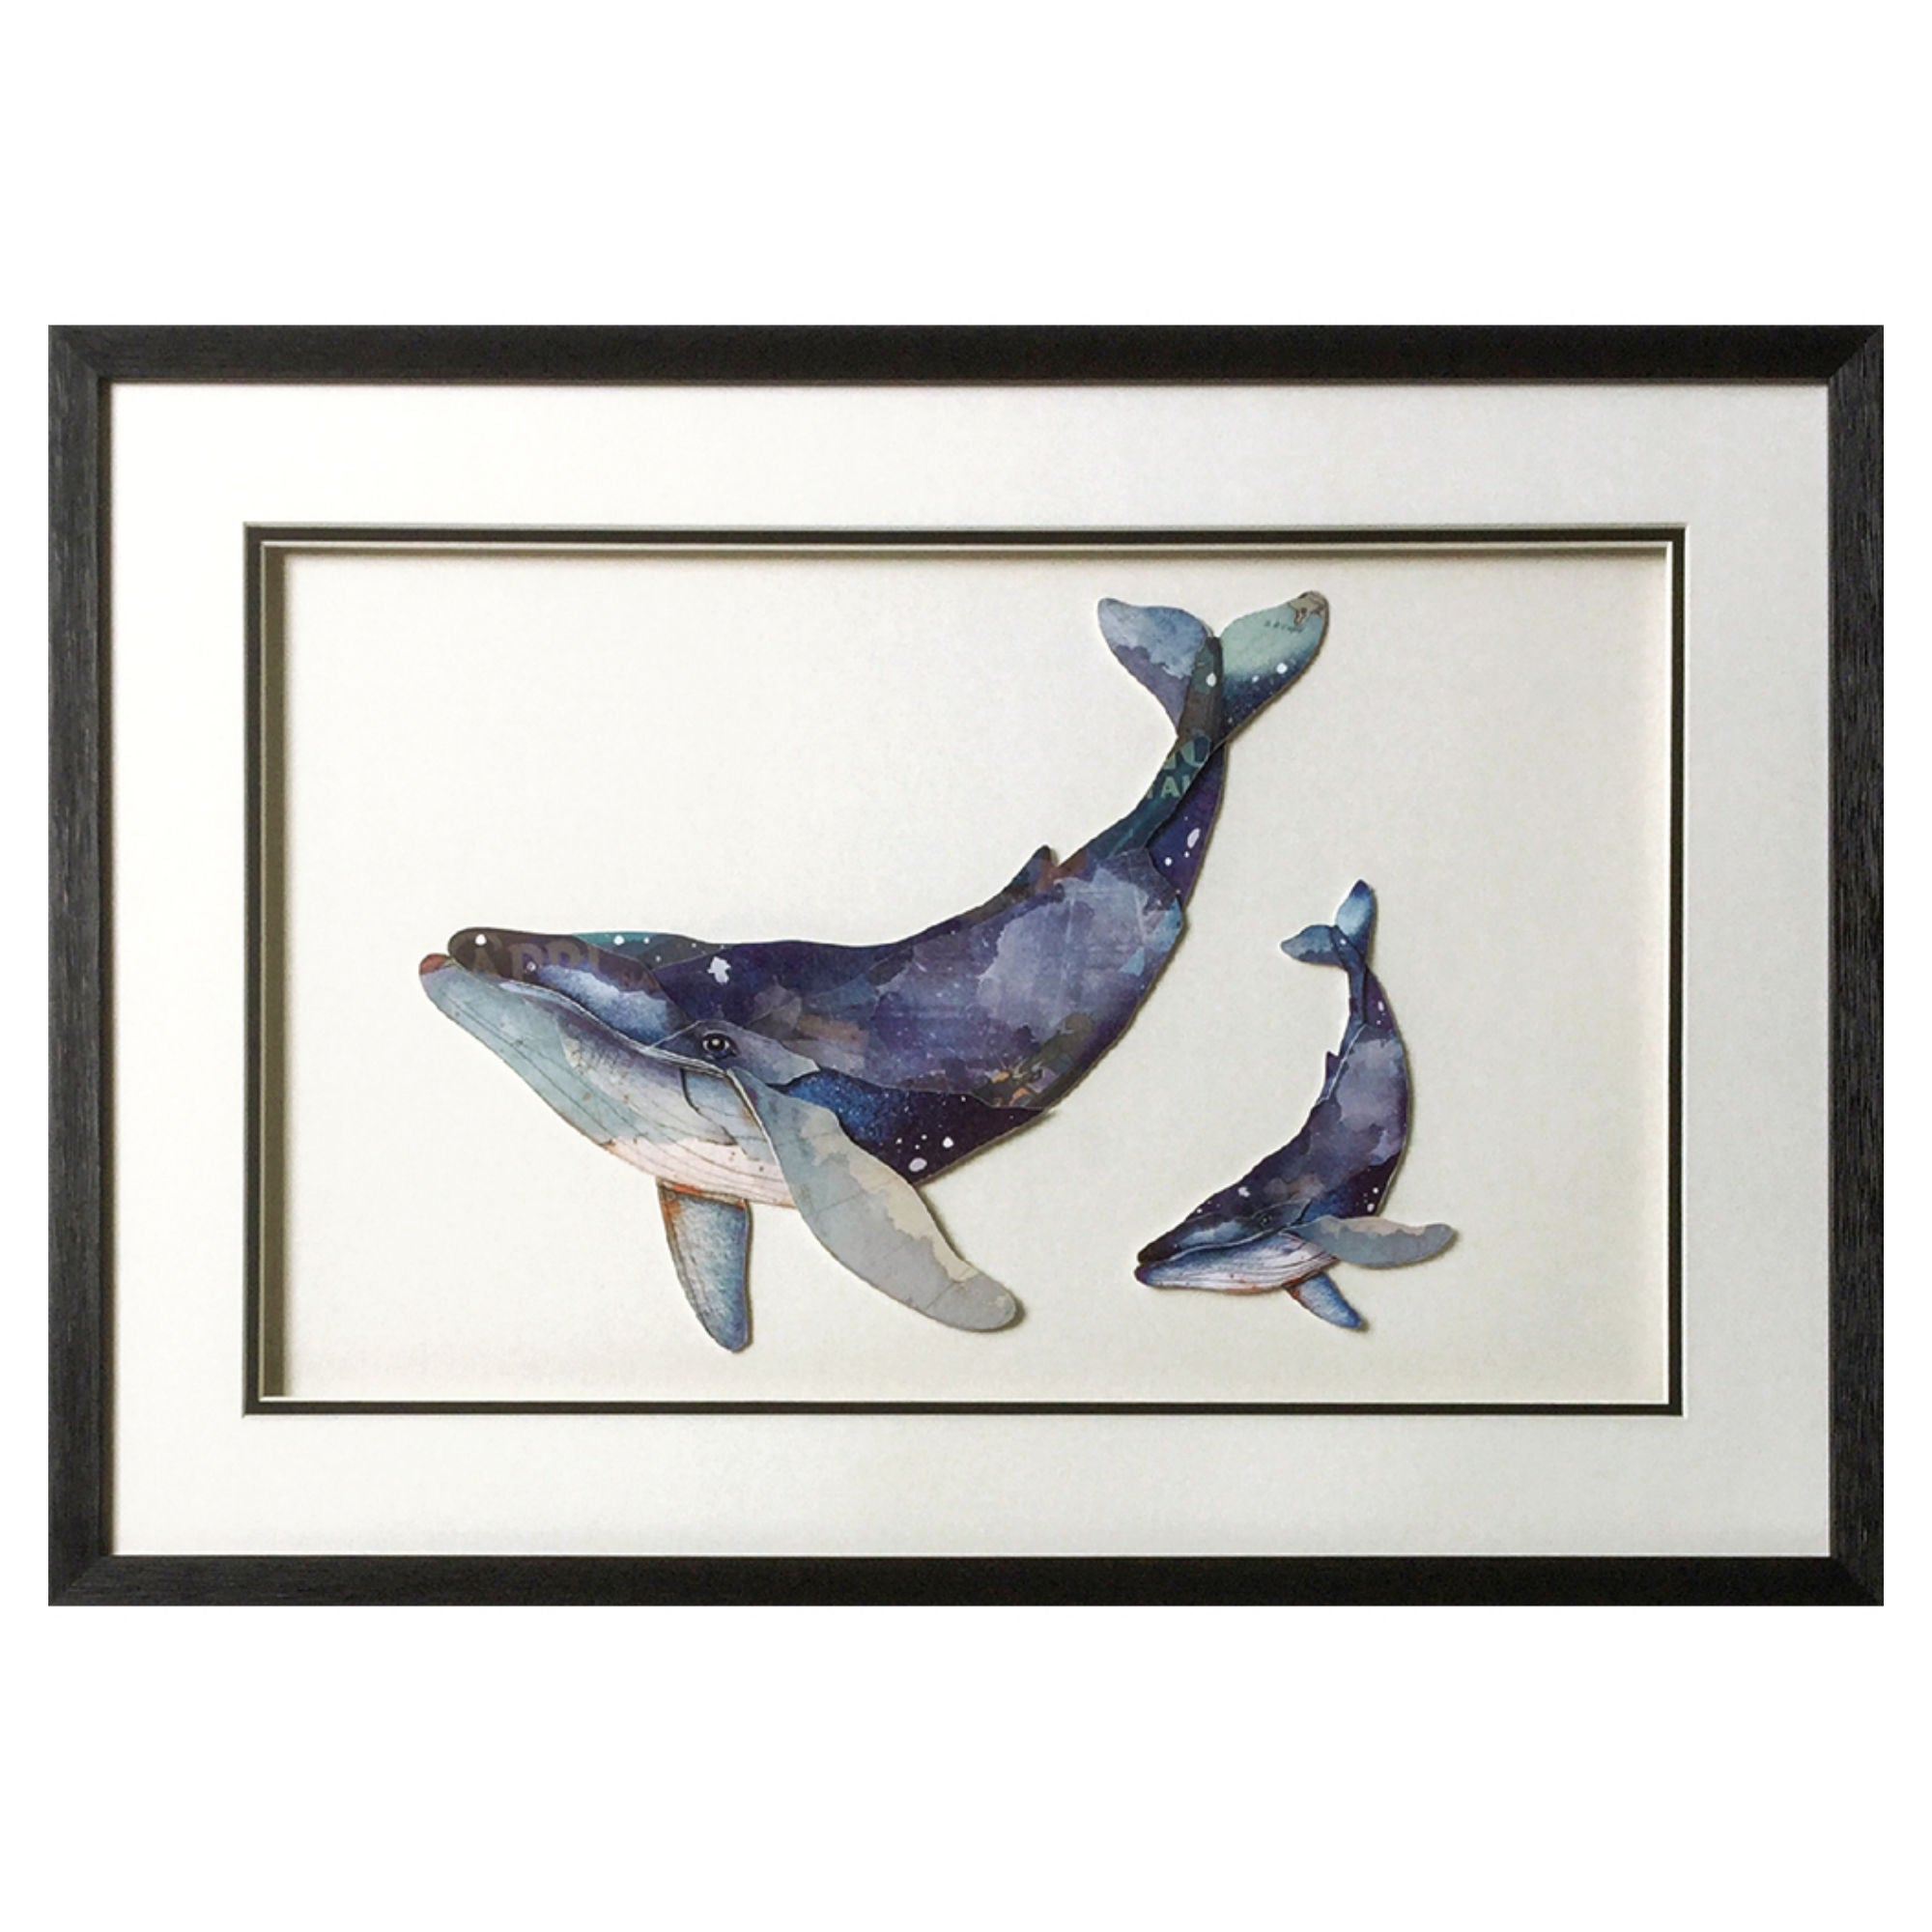 Framed Picture of Whales